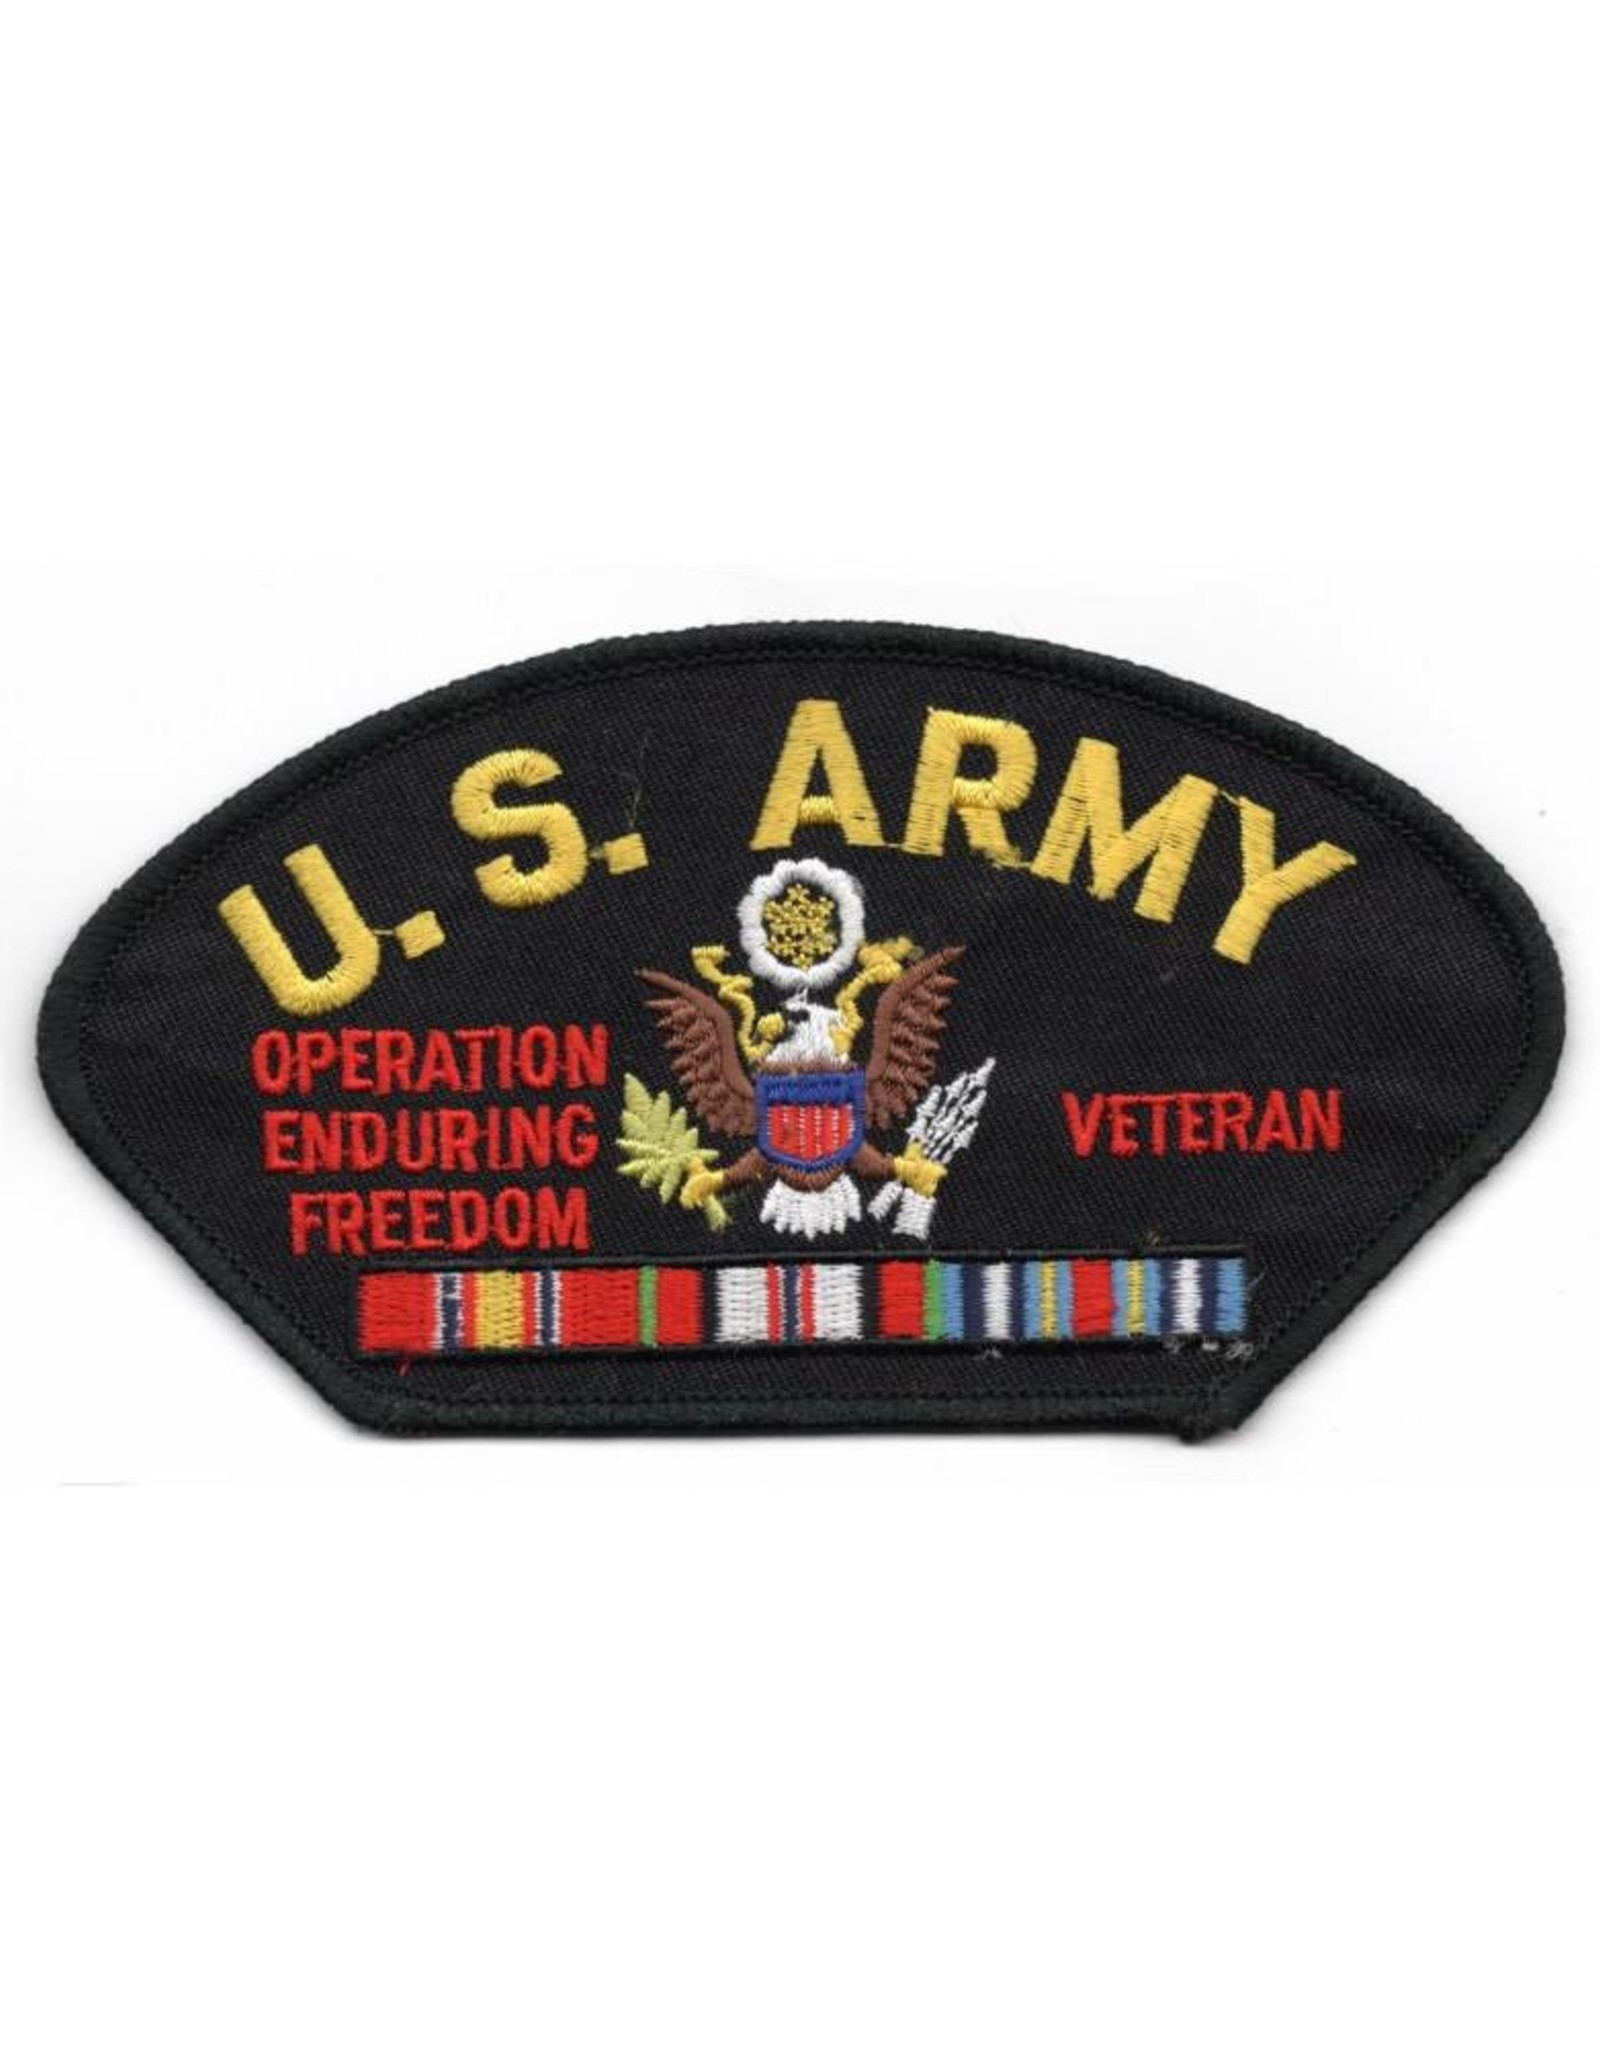 MidMil Embroidered U.S. Army Operation Enduring Freedom Veteran Patch with Ribbons and Army Emblem